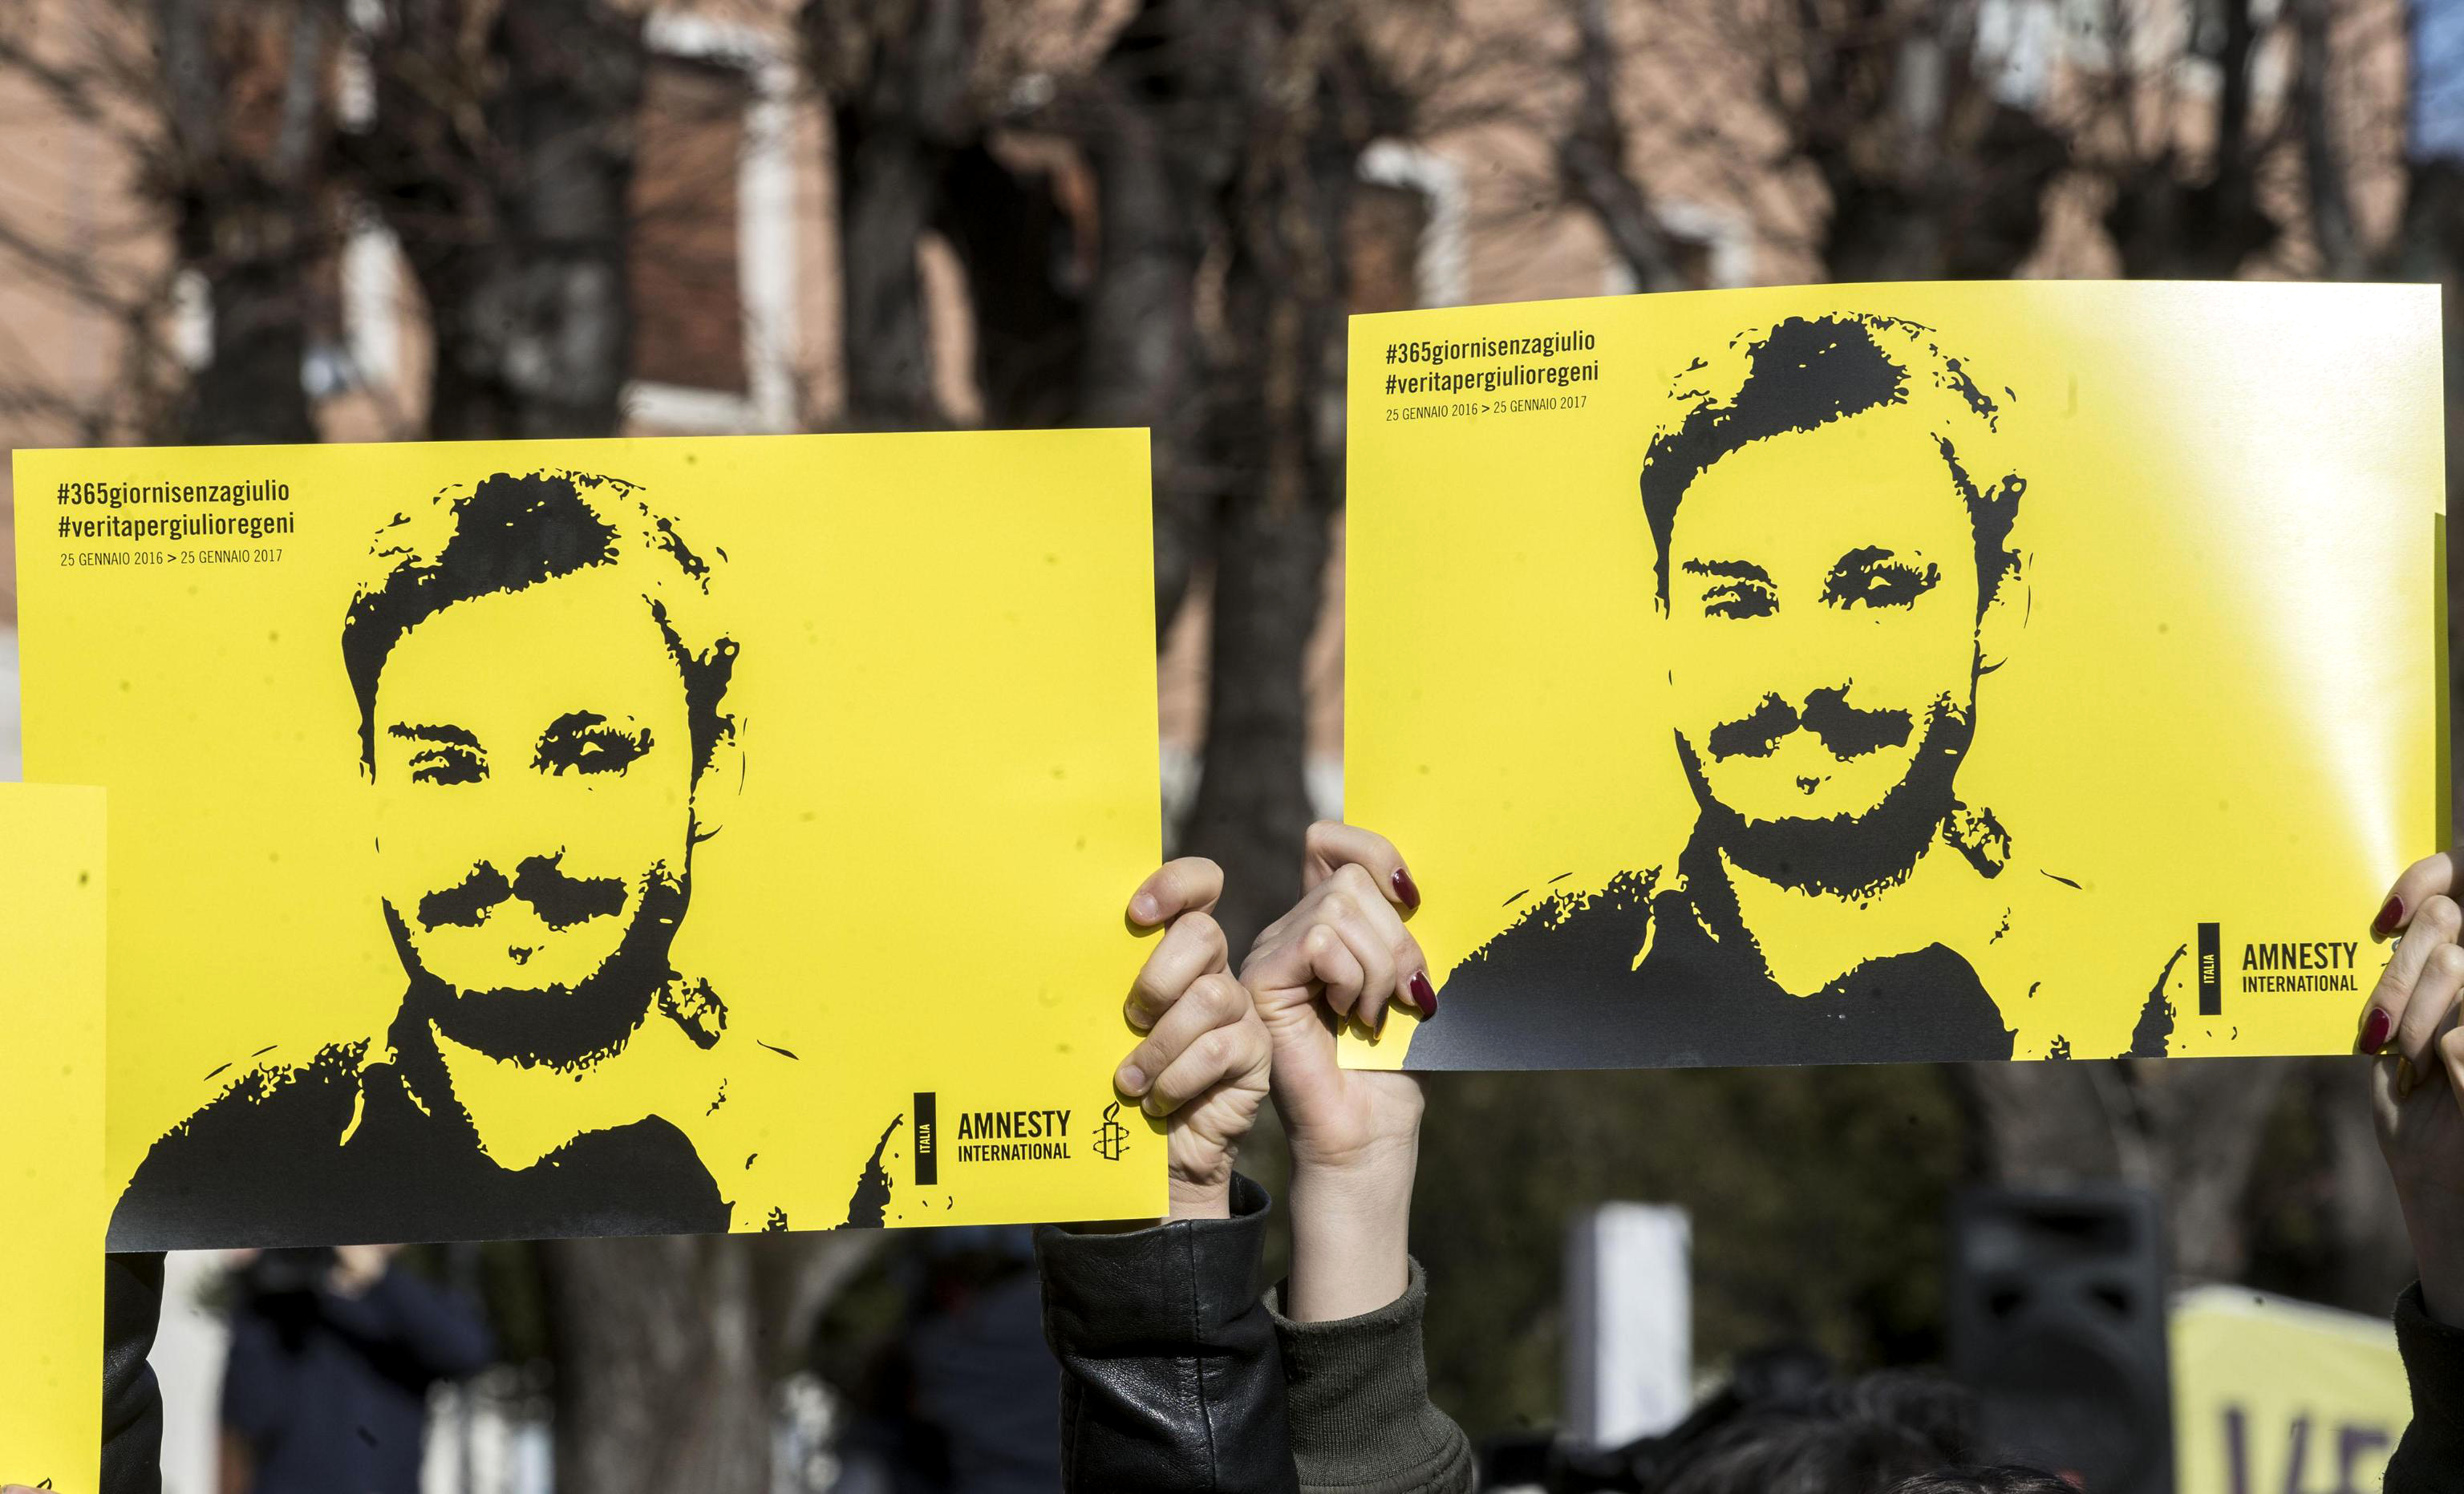 People hold signs depicting Giulio Regeni as they attend a march in memory of the Italian researcher at Sapienza University on the first anniversary of his disappearance in Egypt, Rome, Italy, 25 January 2017. Italian President Sergio Mattarella on the same day called for cooperation to bring the killers of Regeni in Egypt to justice. 'Italy has mourned the killing of one of its studious young people, Giulio Regeni, without full light being shed on this tragic case for a year, despite the intense efforts of our judiciary and our diplomacy', Mattarella said on the first anniversary of Regeni's disappearance. 'We call for broader and more effective cooperation so that the culprits are brought to justice'. Guilio Regeni was an Italian PhD student researching the independent trade unions in Egypt, he disappeared on 25 January 2016 in Cairo, then his body was found in a ditch on Cairo-Alexandria road outside of Cairo on 03 February 2016 with signs of torture.